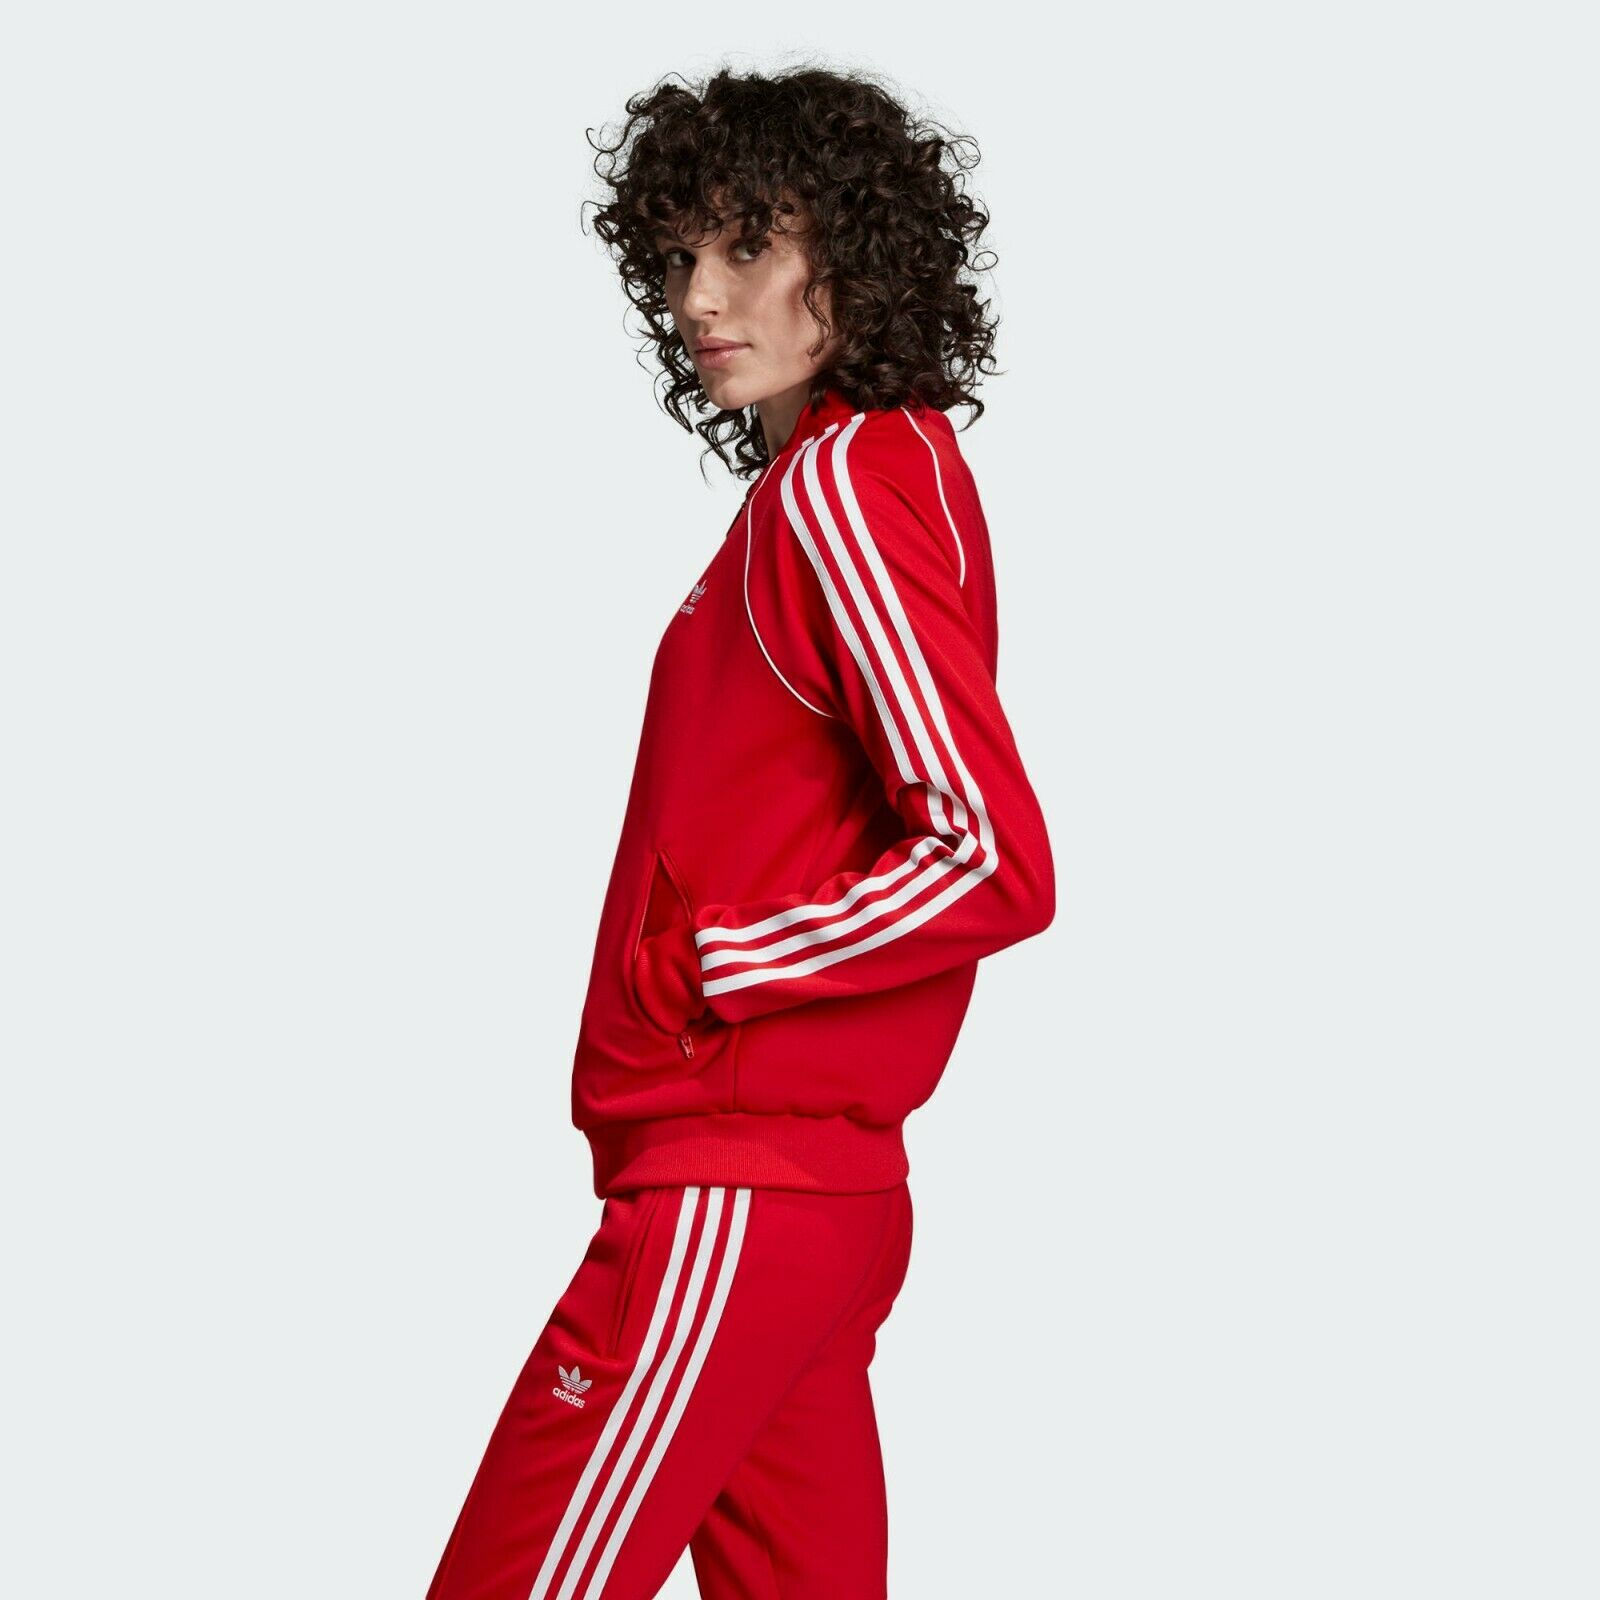 Image 3 - adidas-Women-039-s-Originals-Superstar-Track-Jacket-ED7588